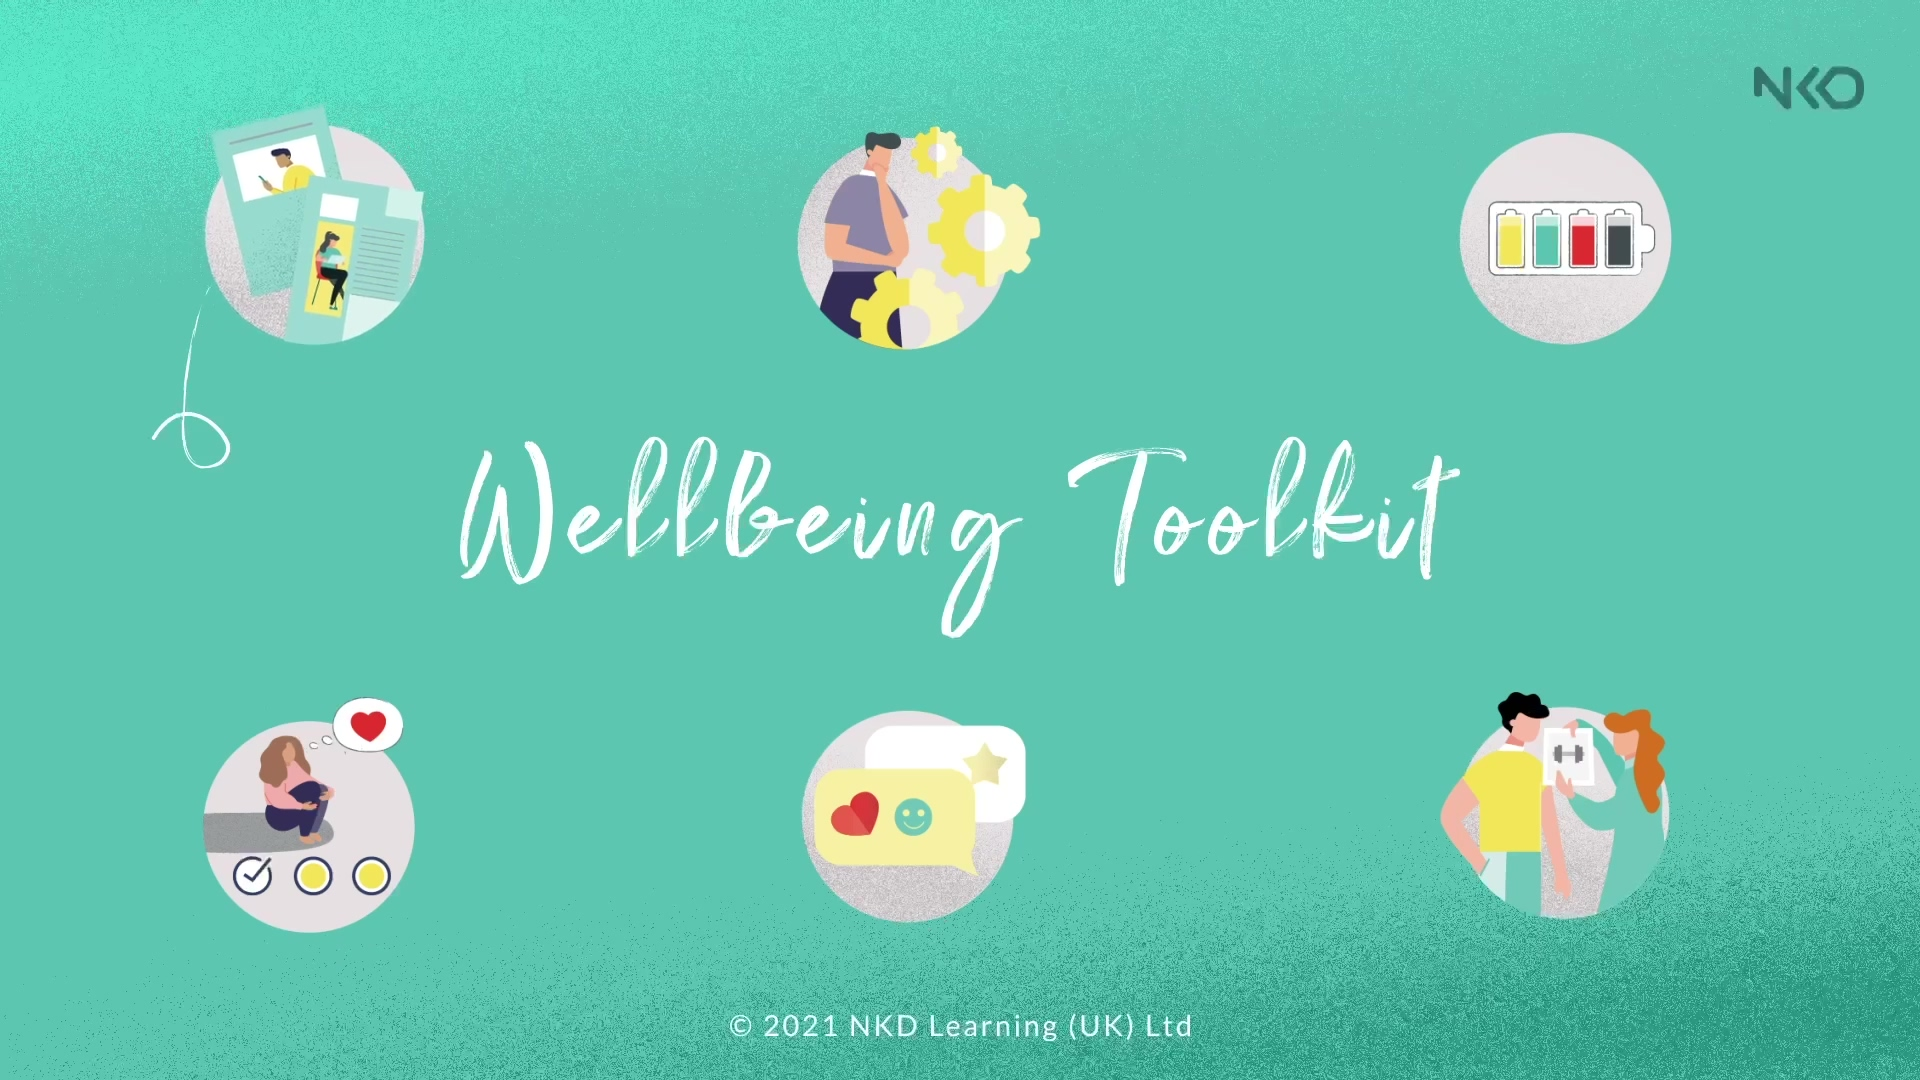 wellbeing-toolkit-animation-04b07f287f